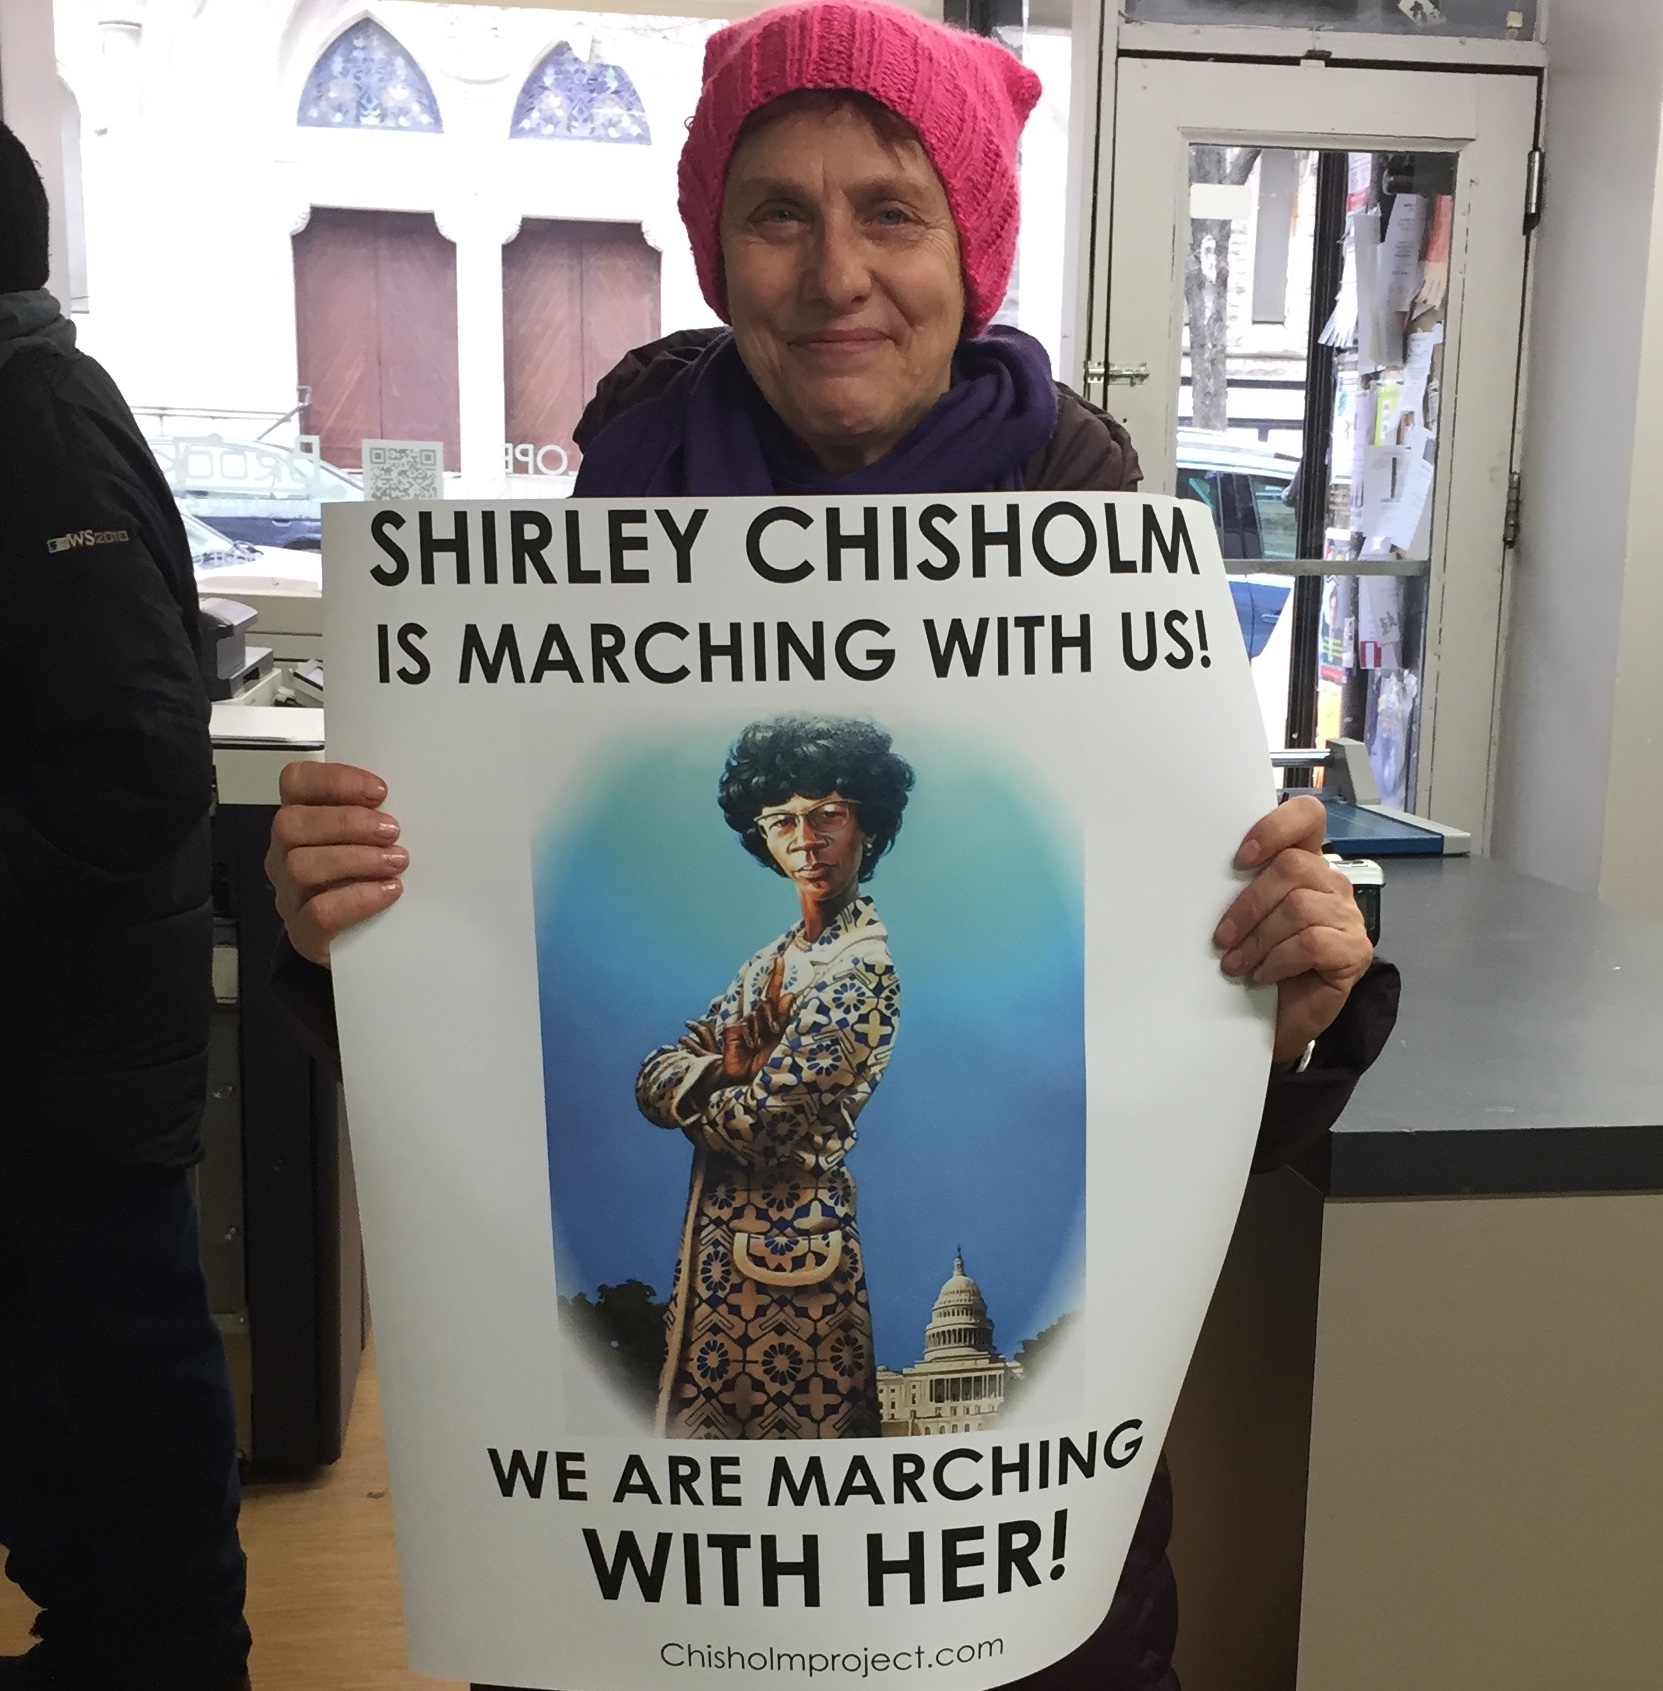 the political career of shirley chisholm the first black female elected to the united states congres And during this time she formed the basis of her political career the first black woman elected to congress united states congress shirley chisholm.